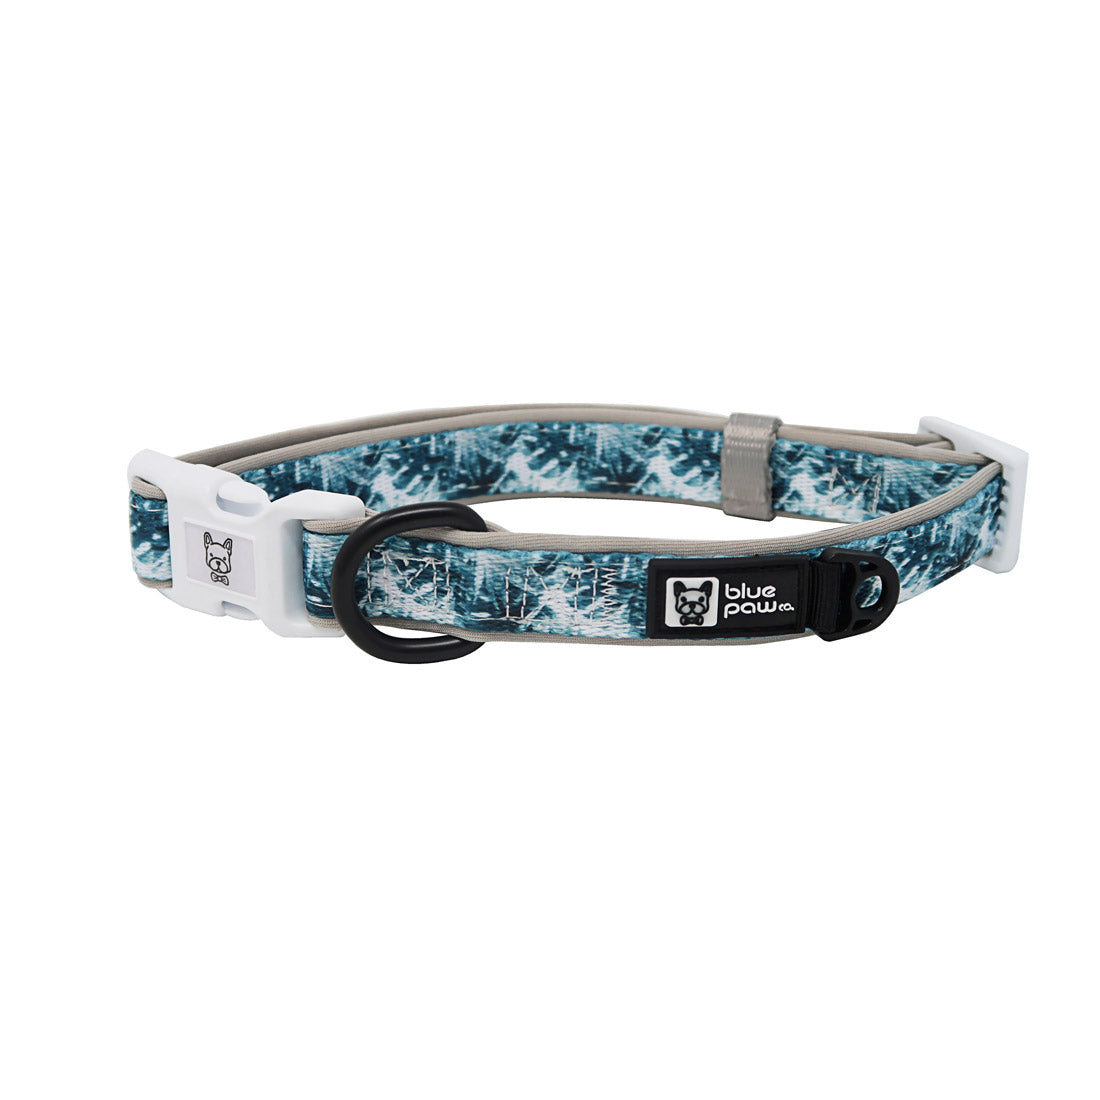 Dog Collar - Posh Palms - Blue Paw Co.